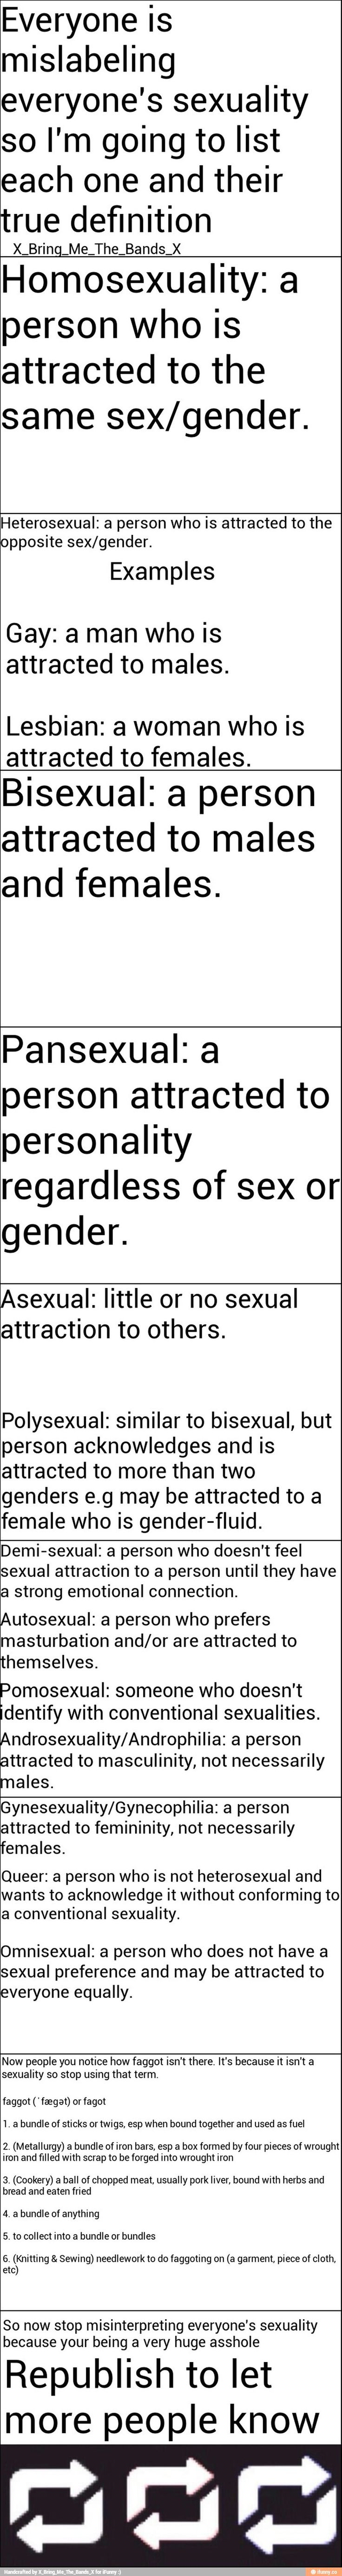 """Honesty tho ppl always say mean things about being """"gay"""" like its an insult , lets change that"""